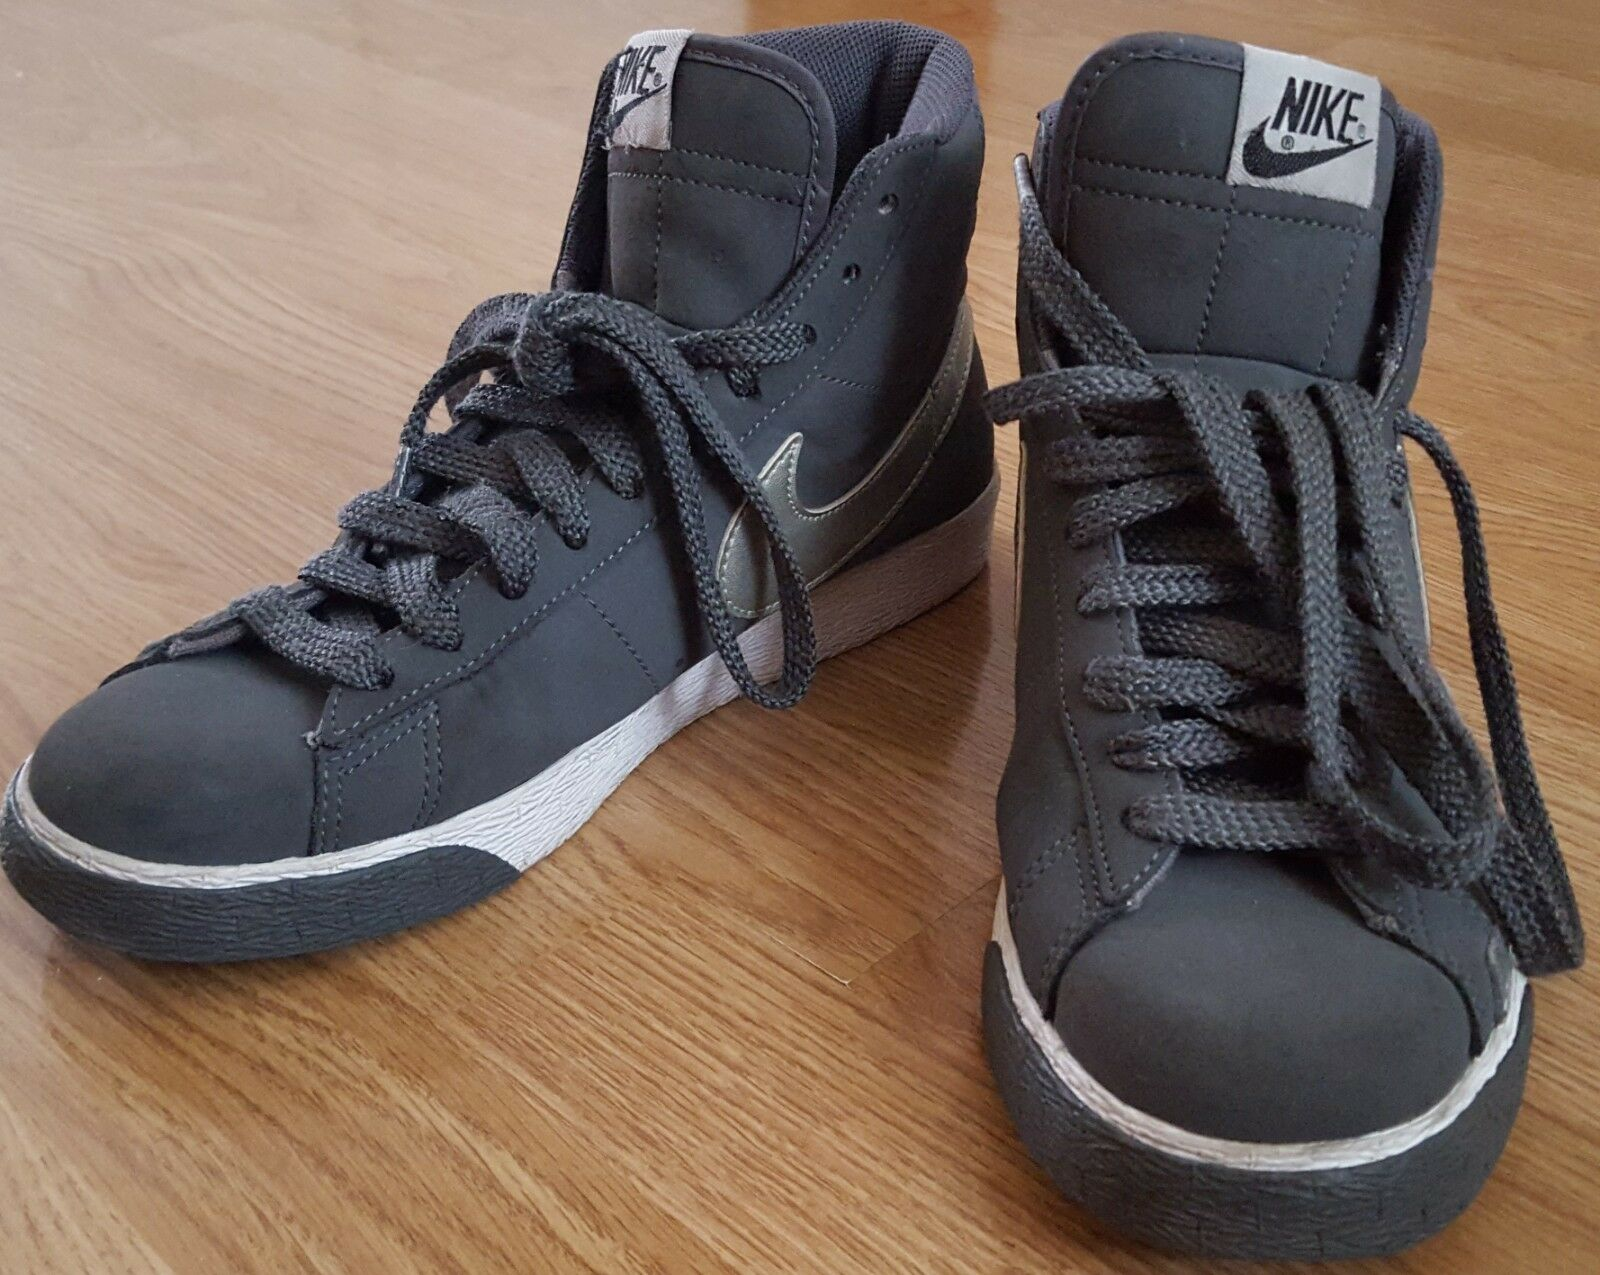 Nike Trainers Boots Ankle Shoes Lace Up Grey Comfortable Seasonal clearance sale